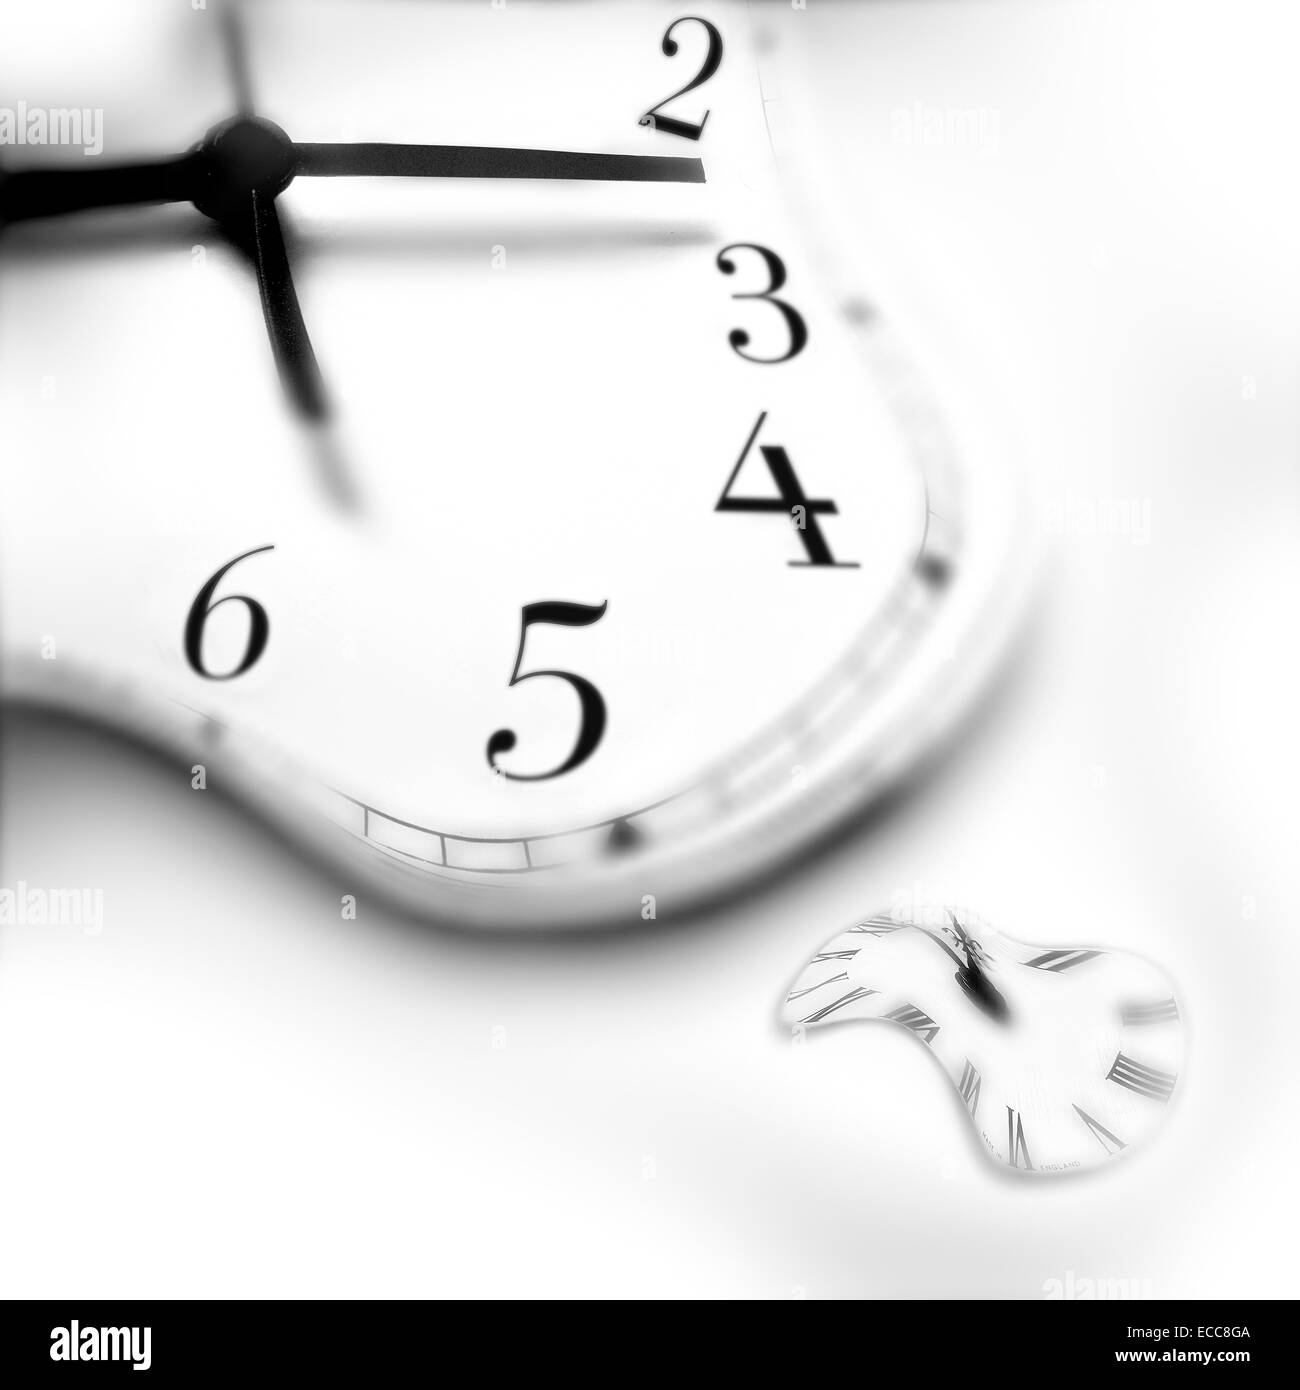 A conceptual image of warped clocks - Stock Image